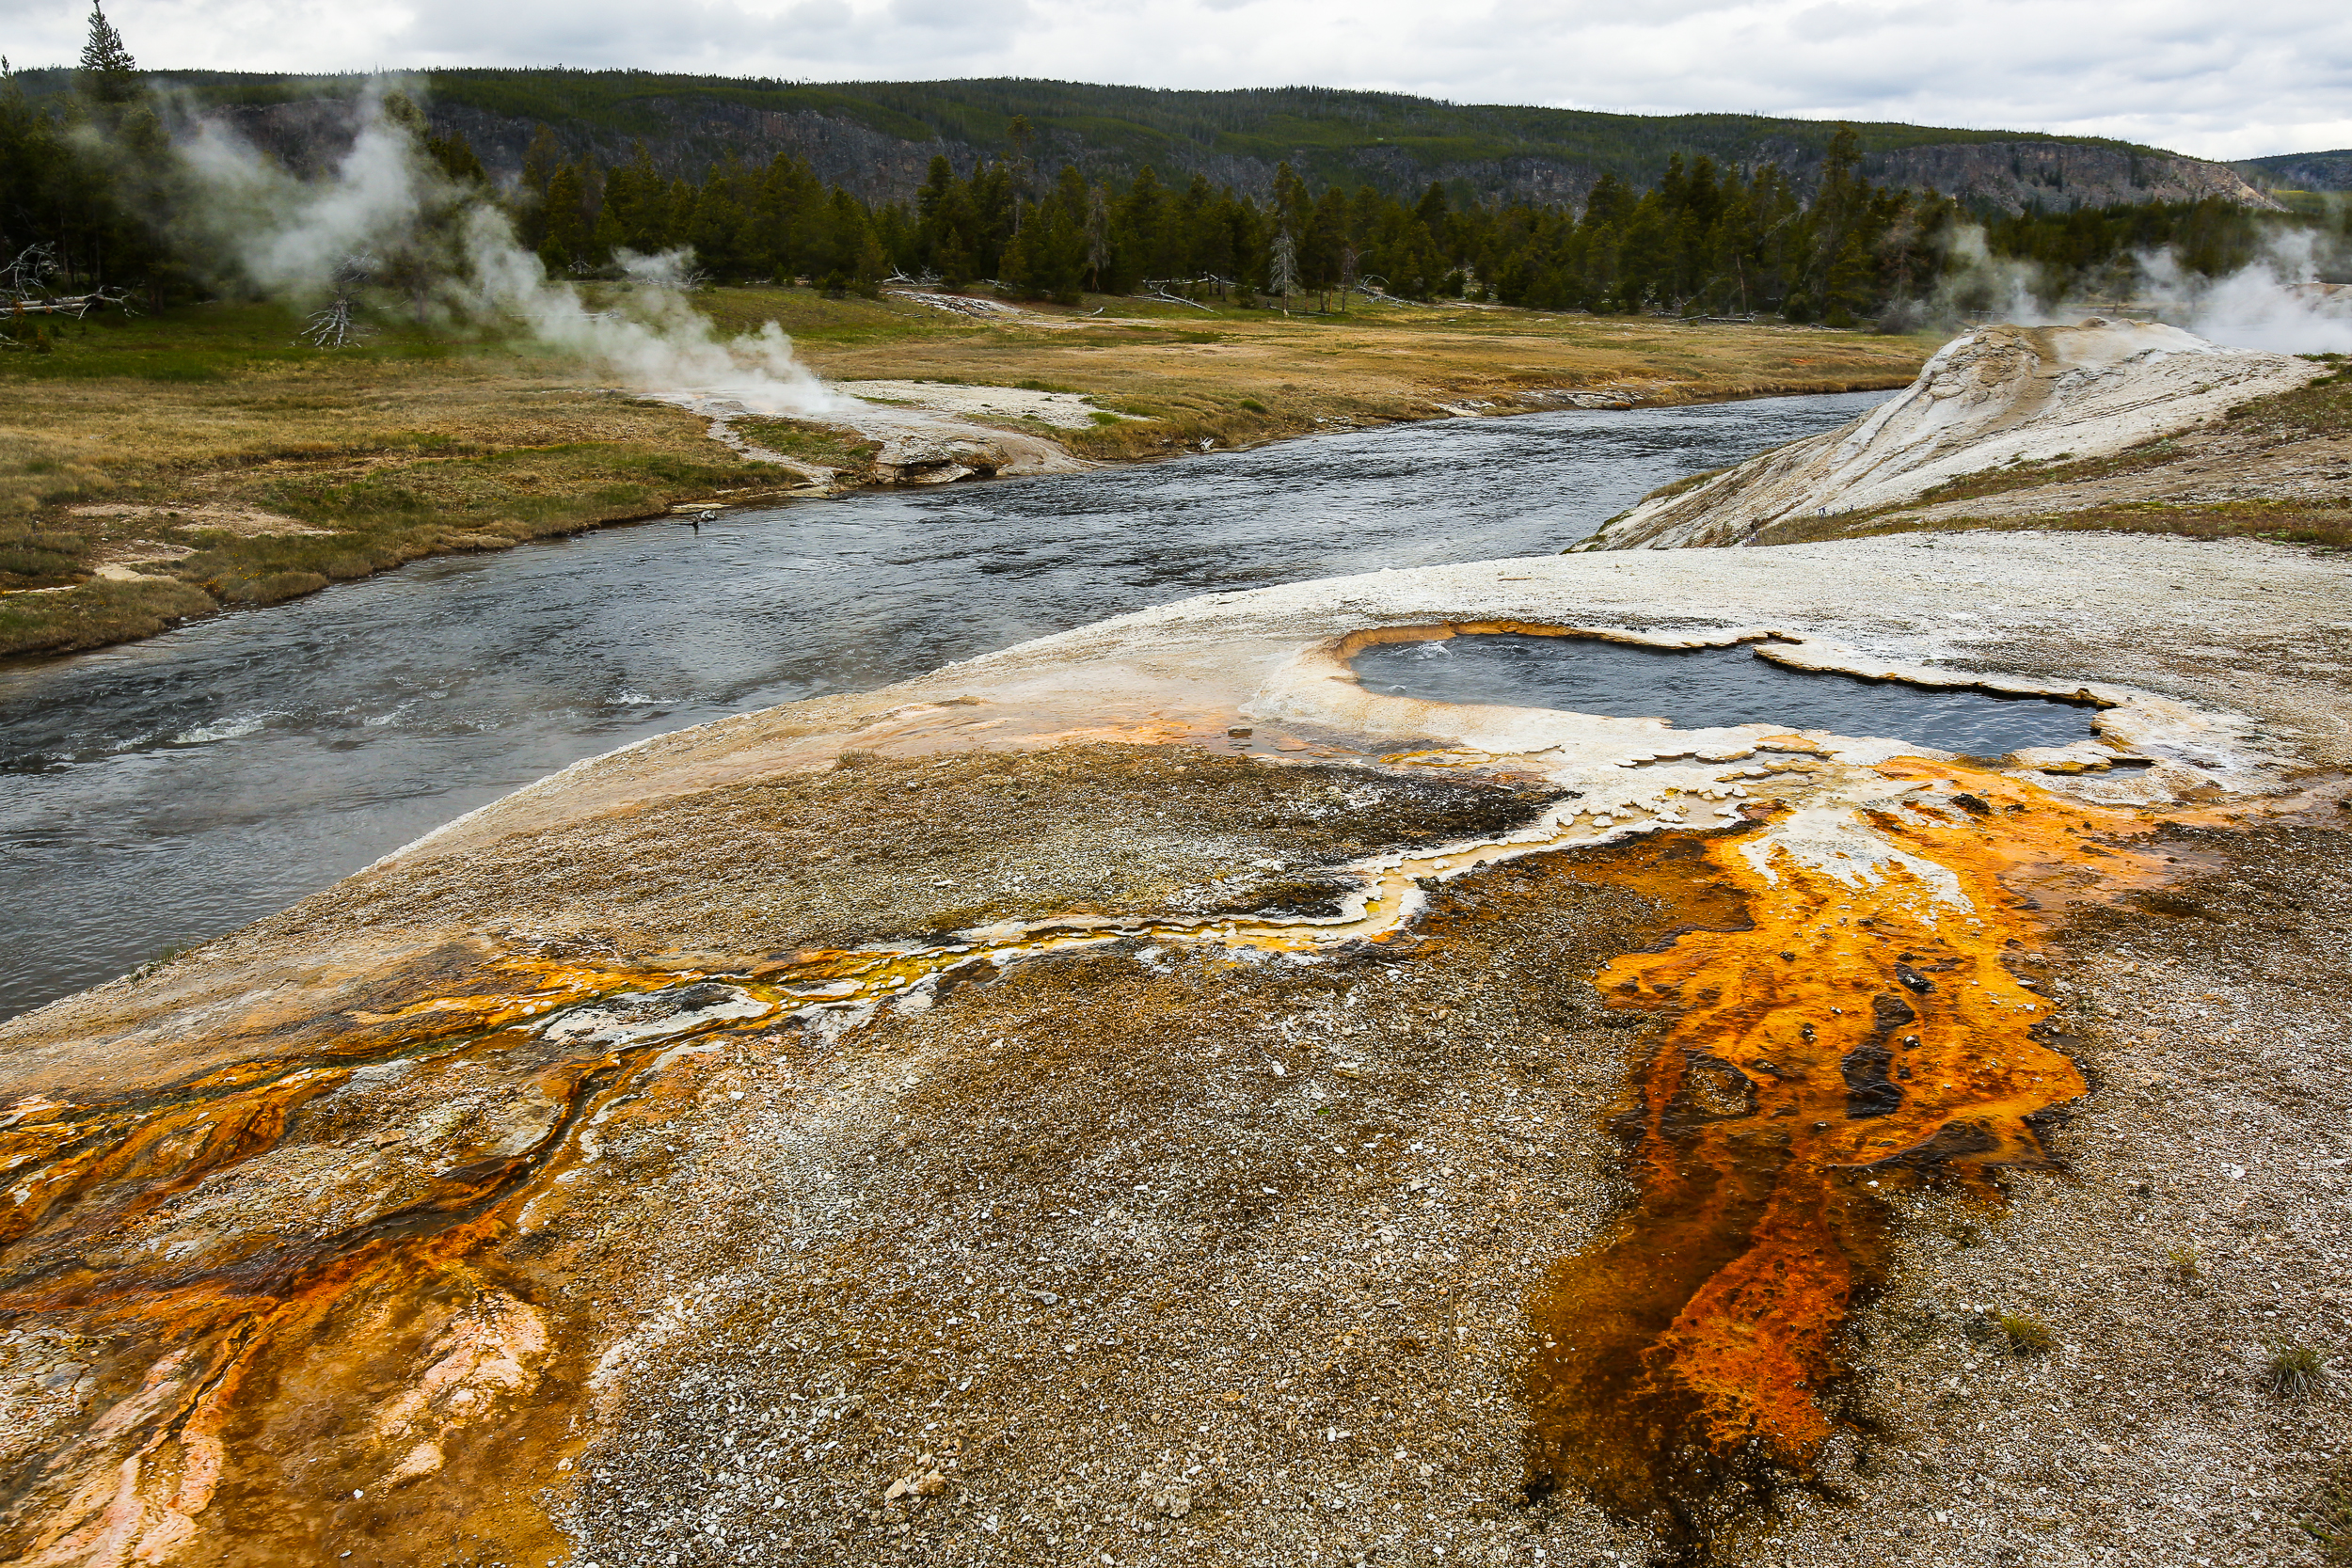 South Scalloped Spring, on the east bank of the Firehole River